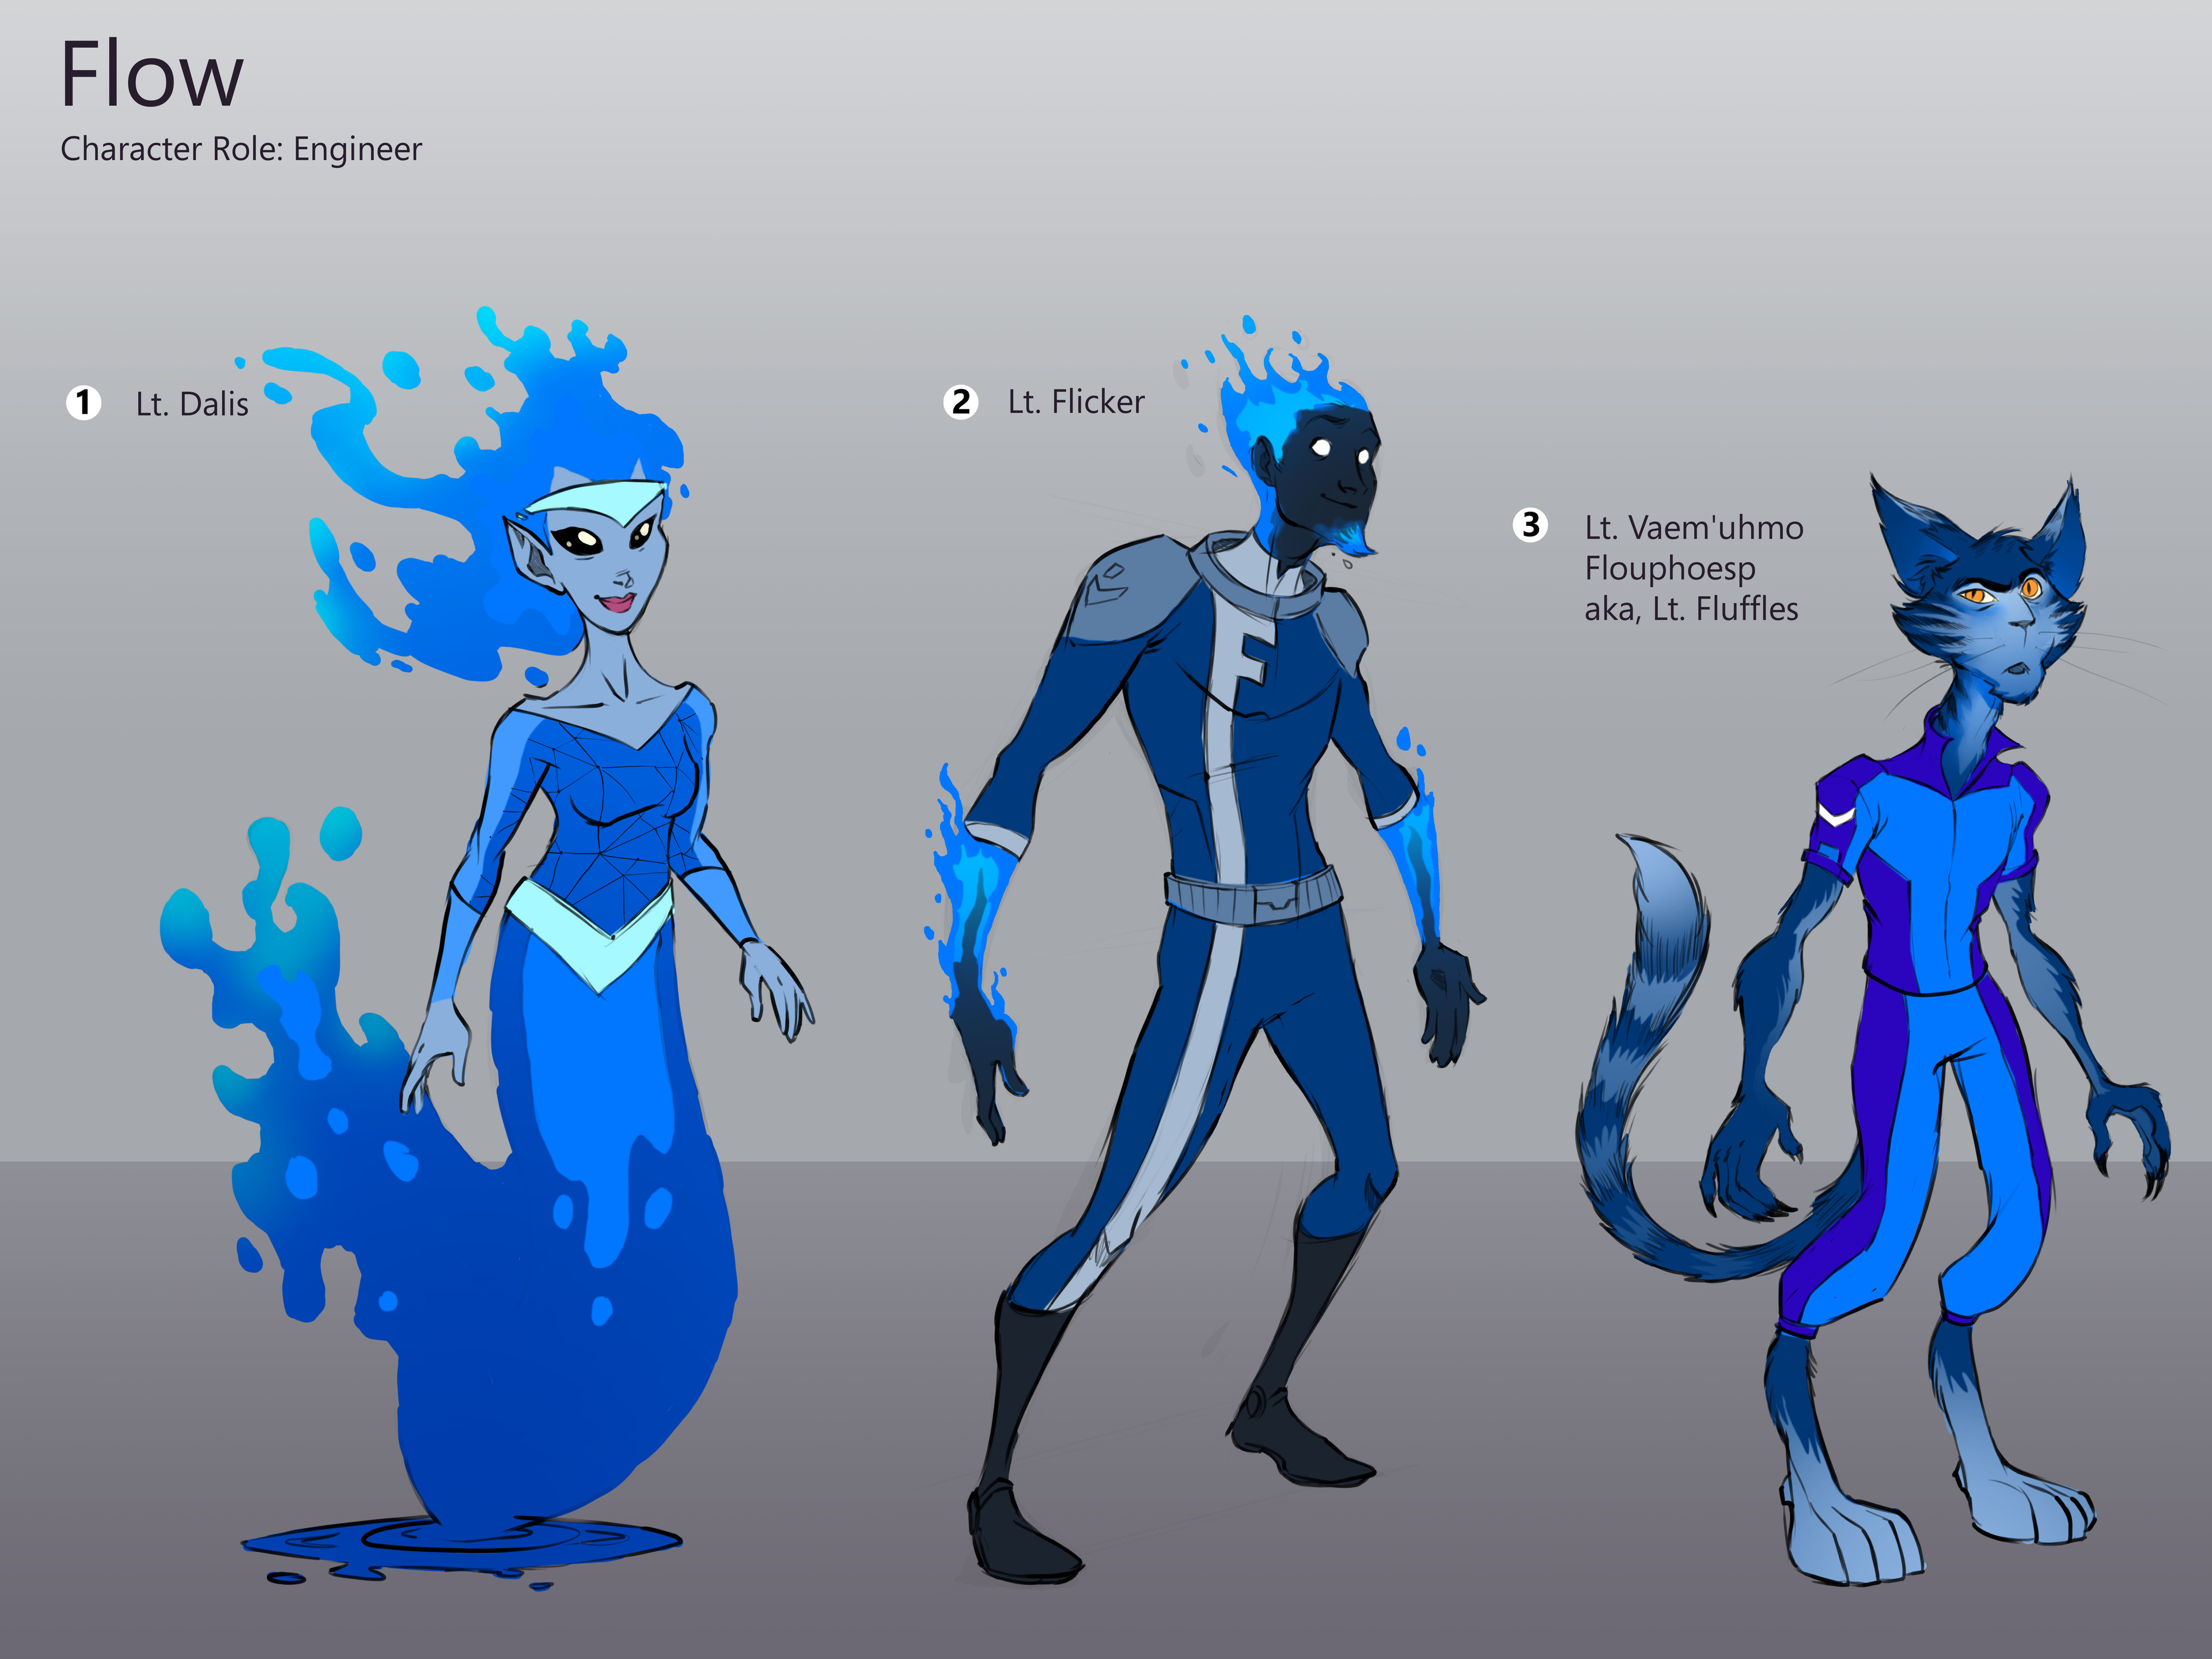 Refined character designs